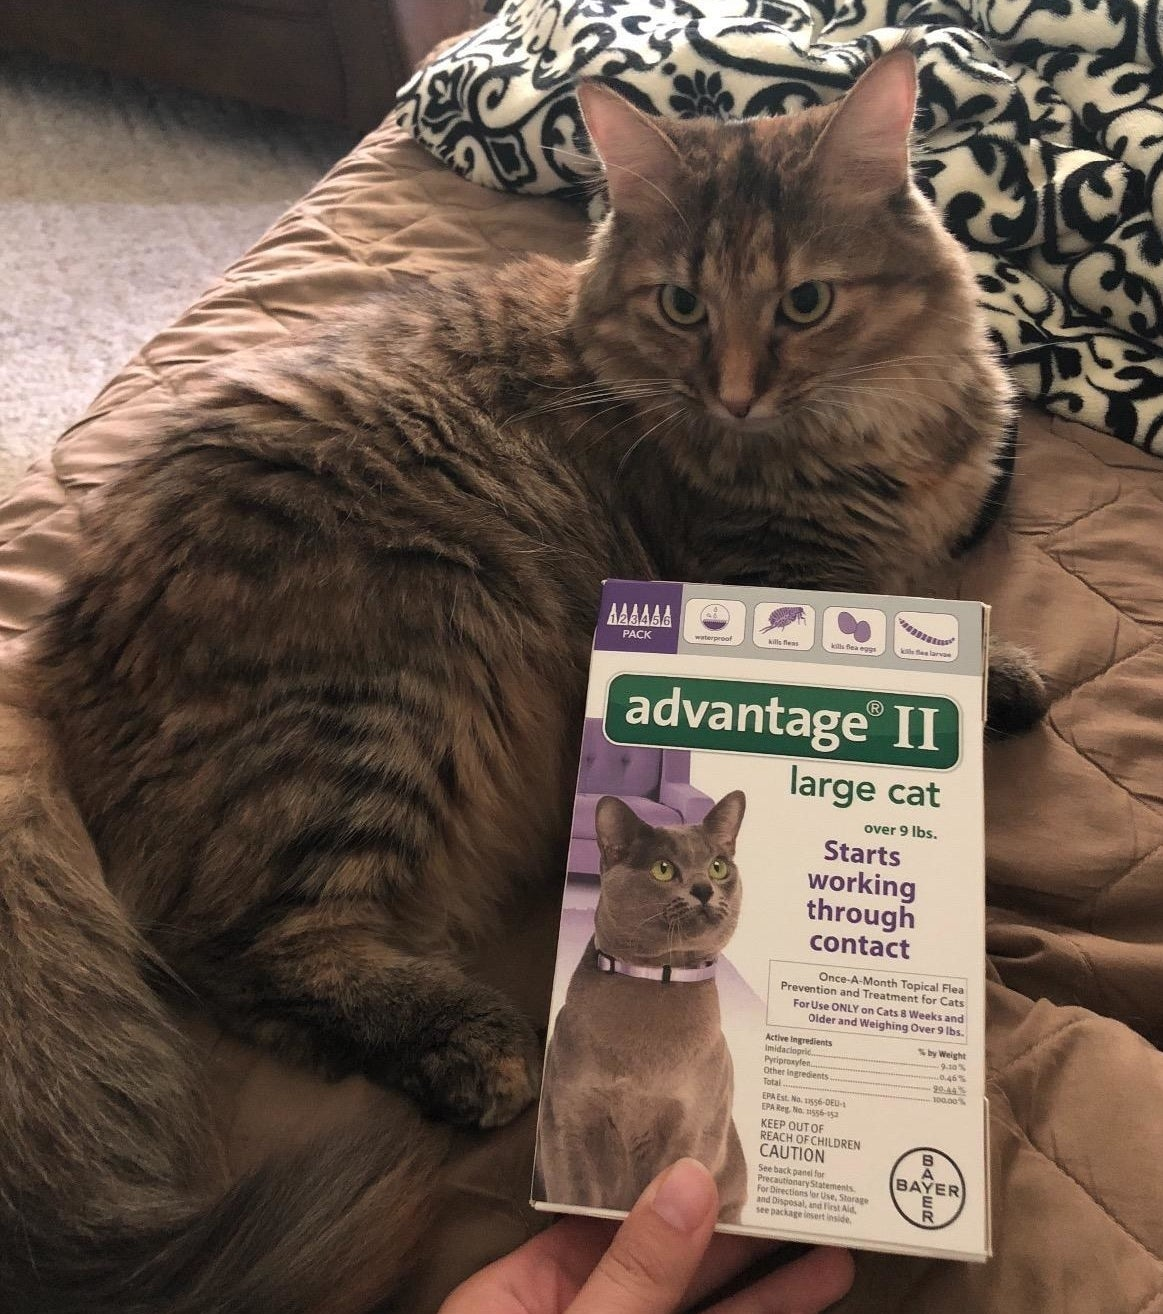 Reviewer image of product designed for cats over 9 lbs.